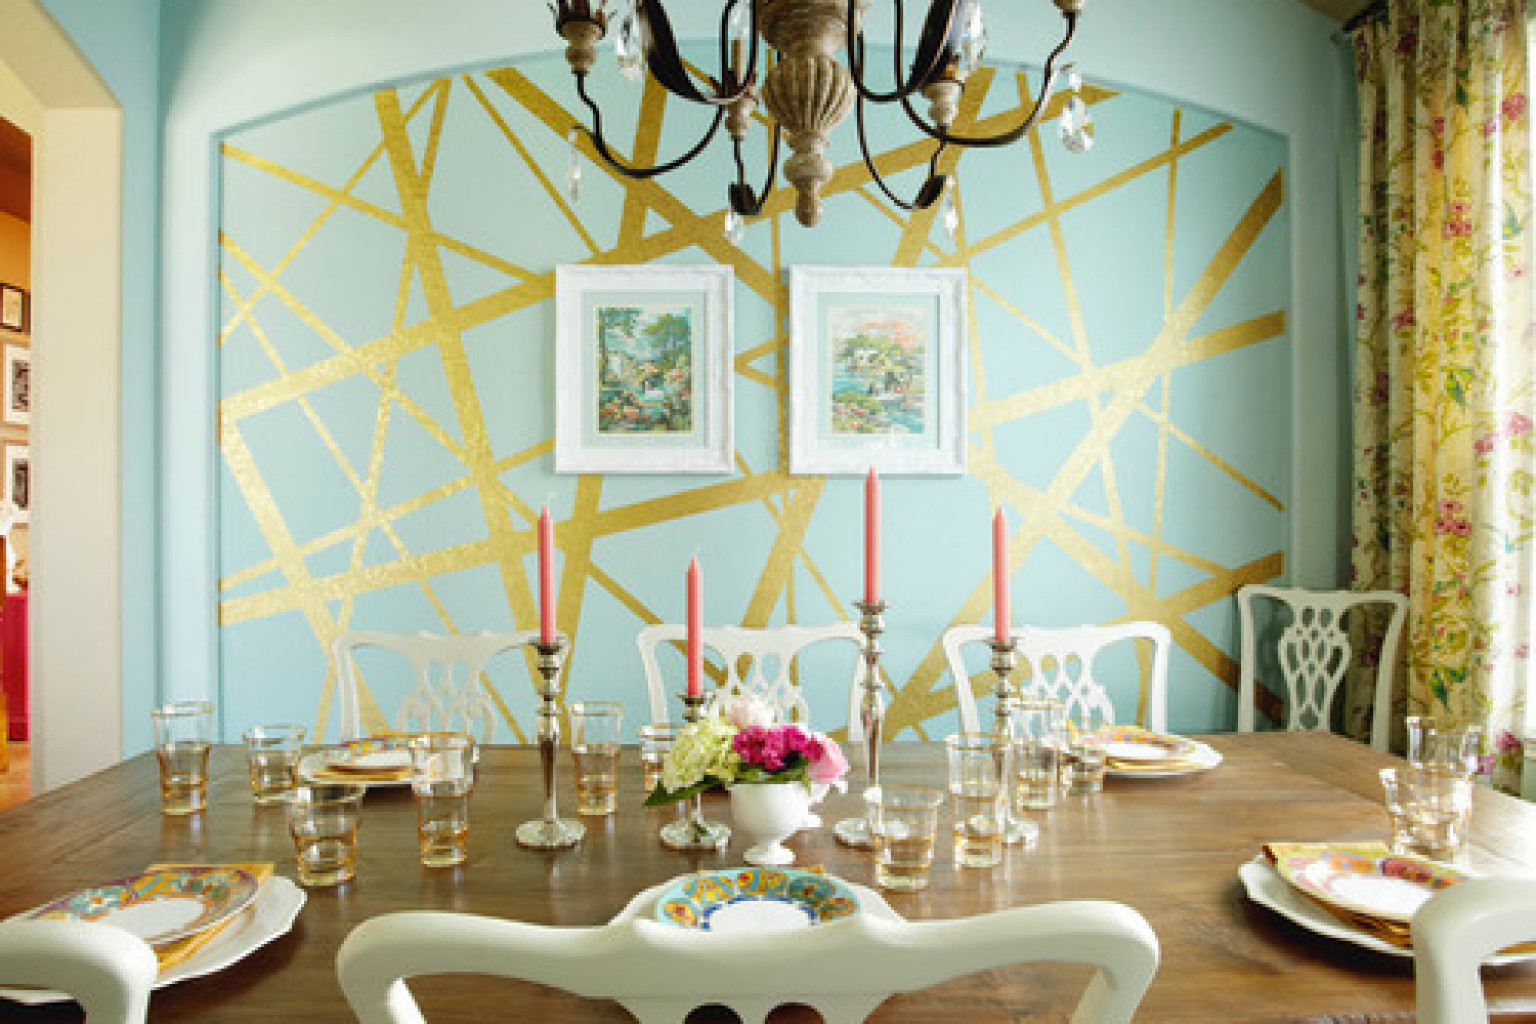 8 Incredible Interior Paint Ideas From Real Homes That ... on Painting Ideas For House  id=26156